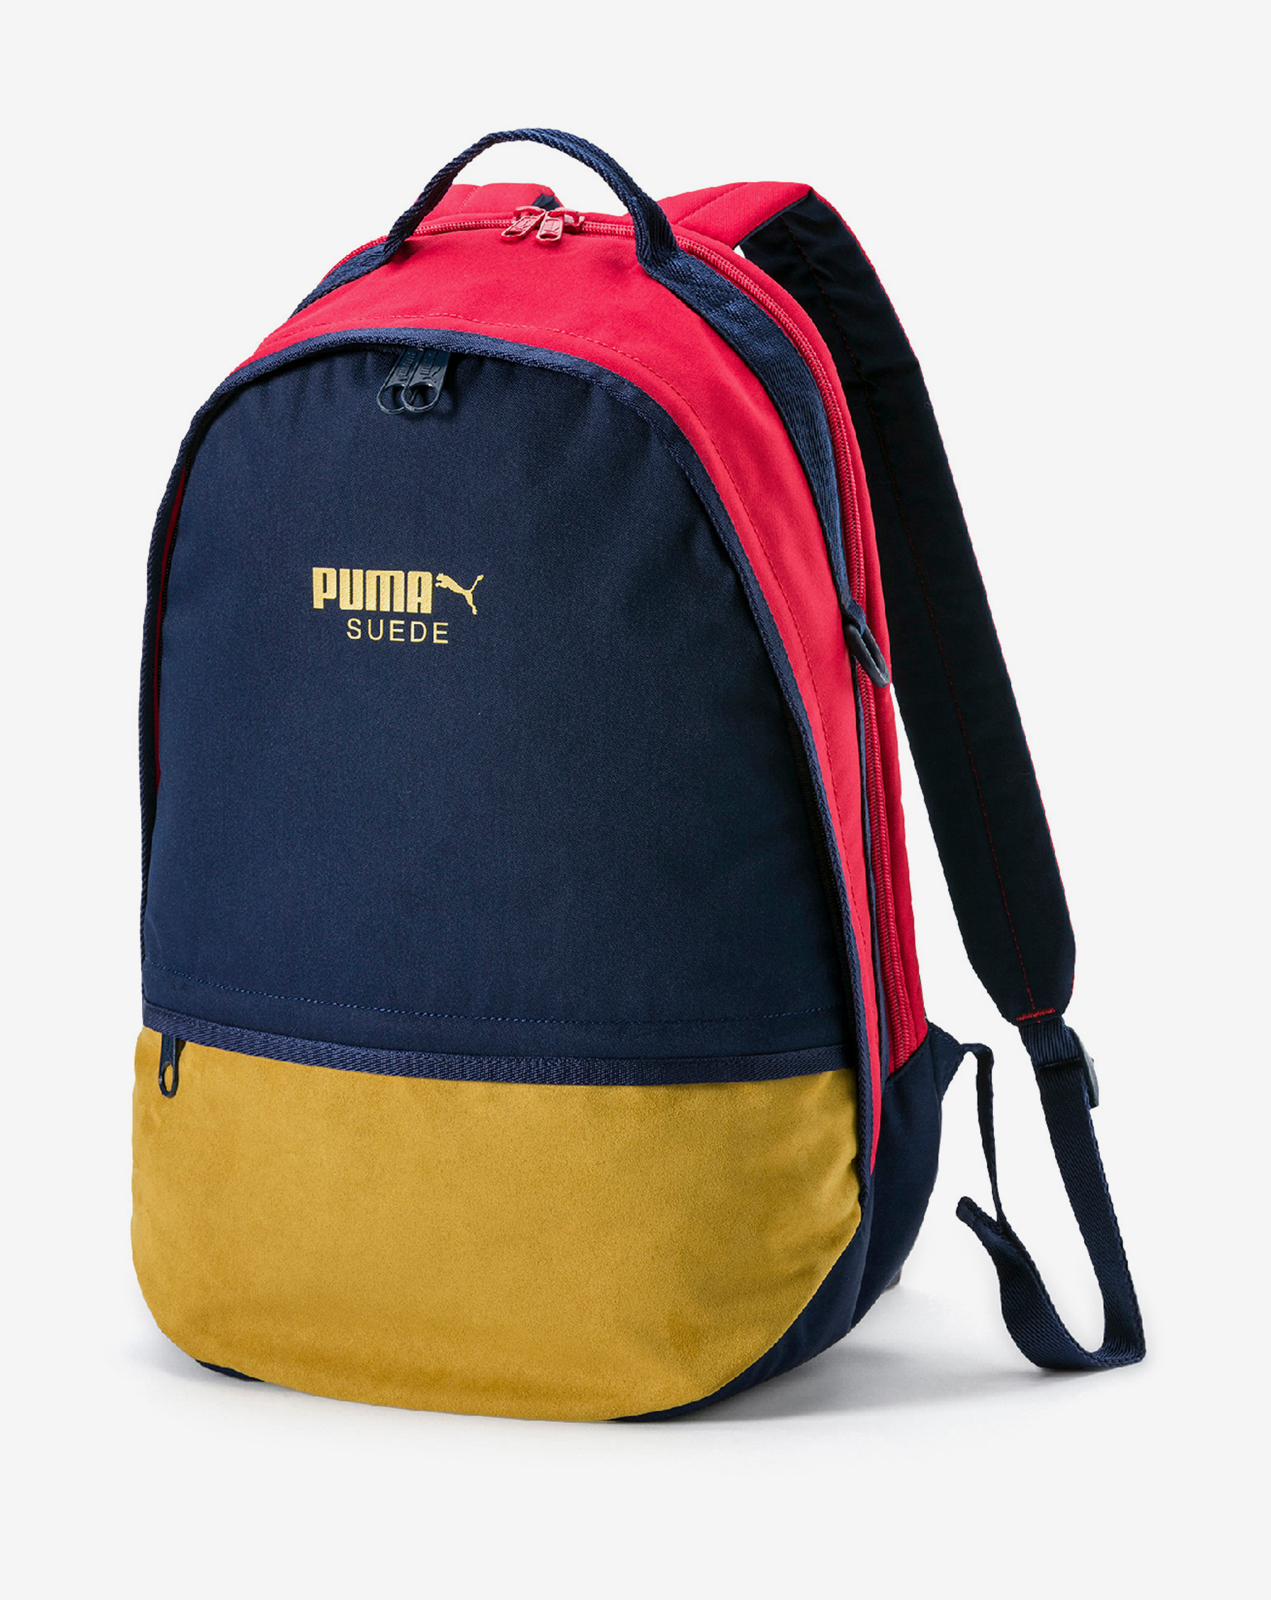 Puma Suede Backpack Peacoat-Ribbon Red